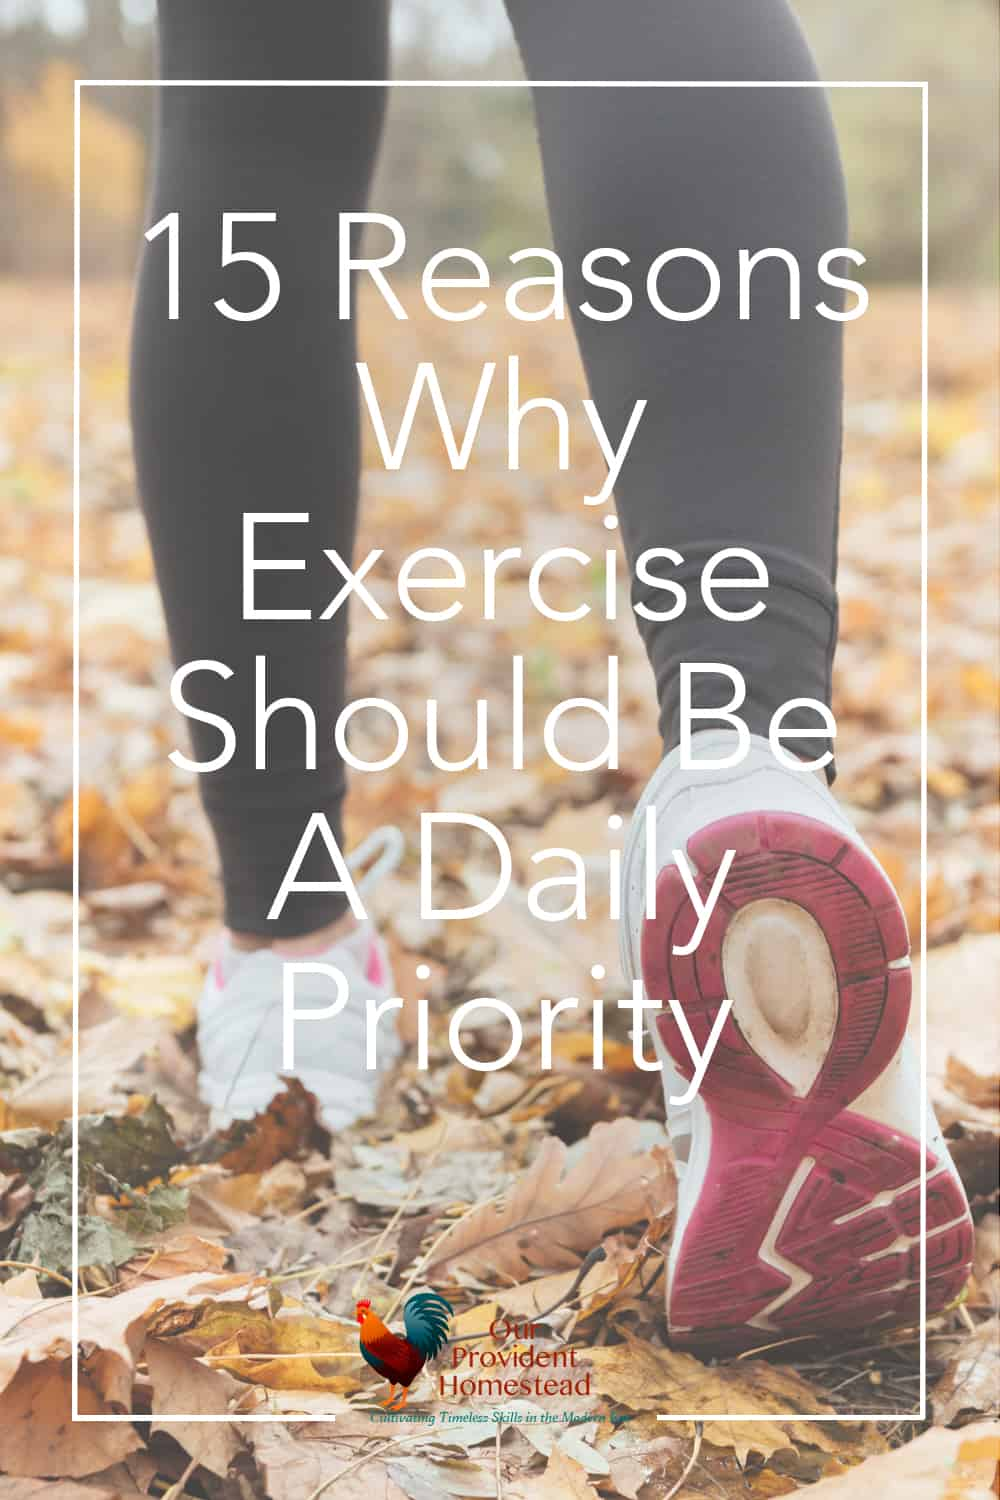 Is exercise part of your daily routine? Click here to see why exercise is important and how we can incorporate it into our daily lives. #exercise #health #healthyhabits